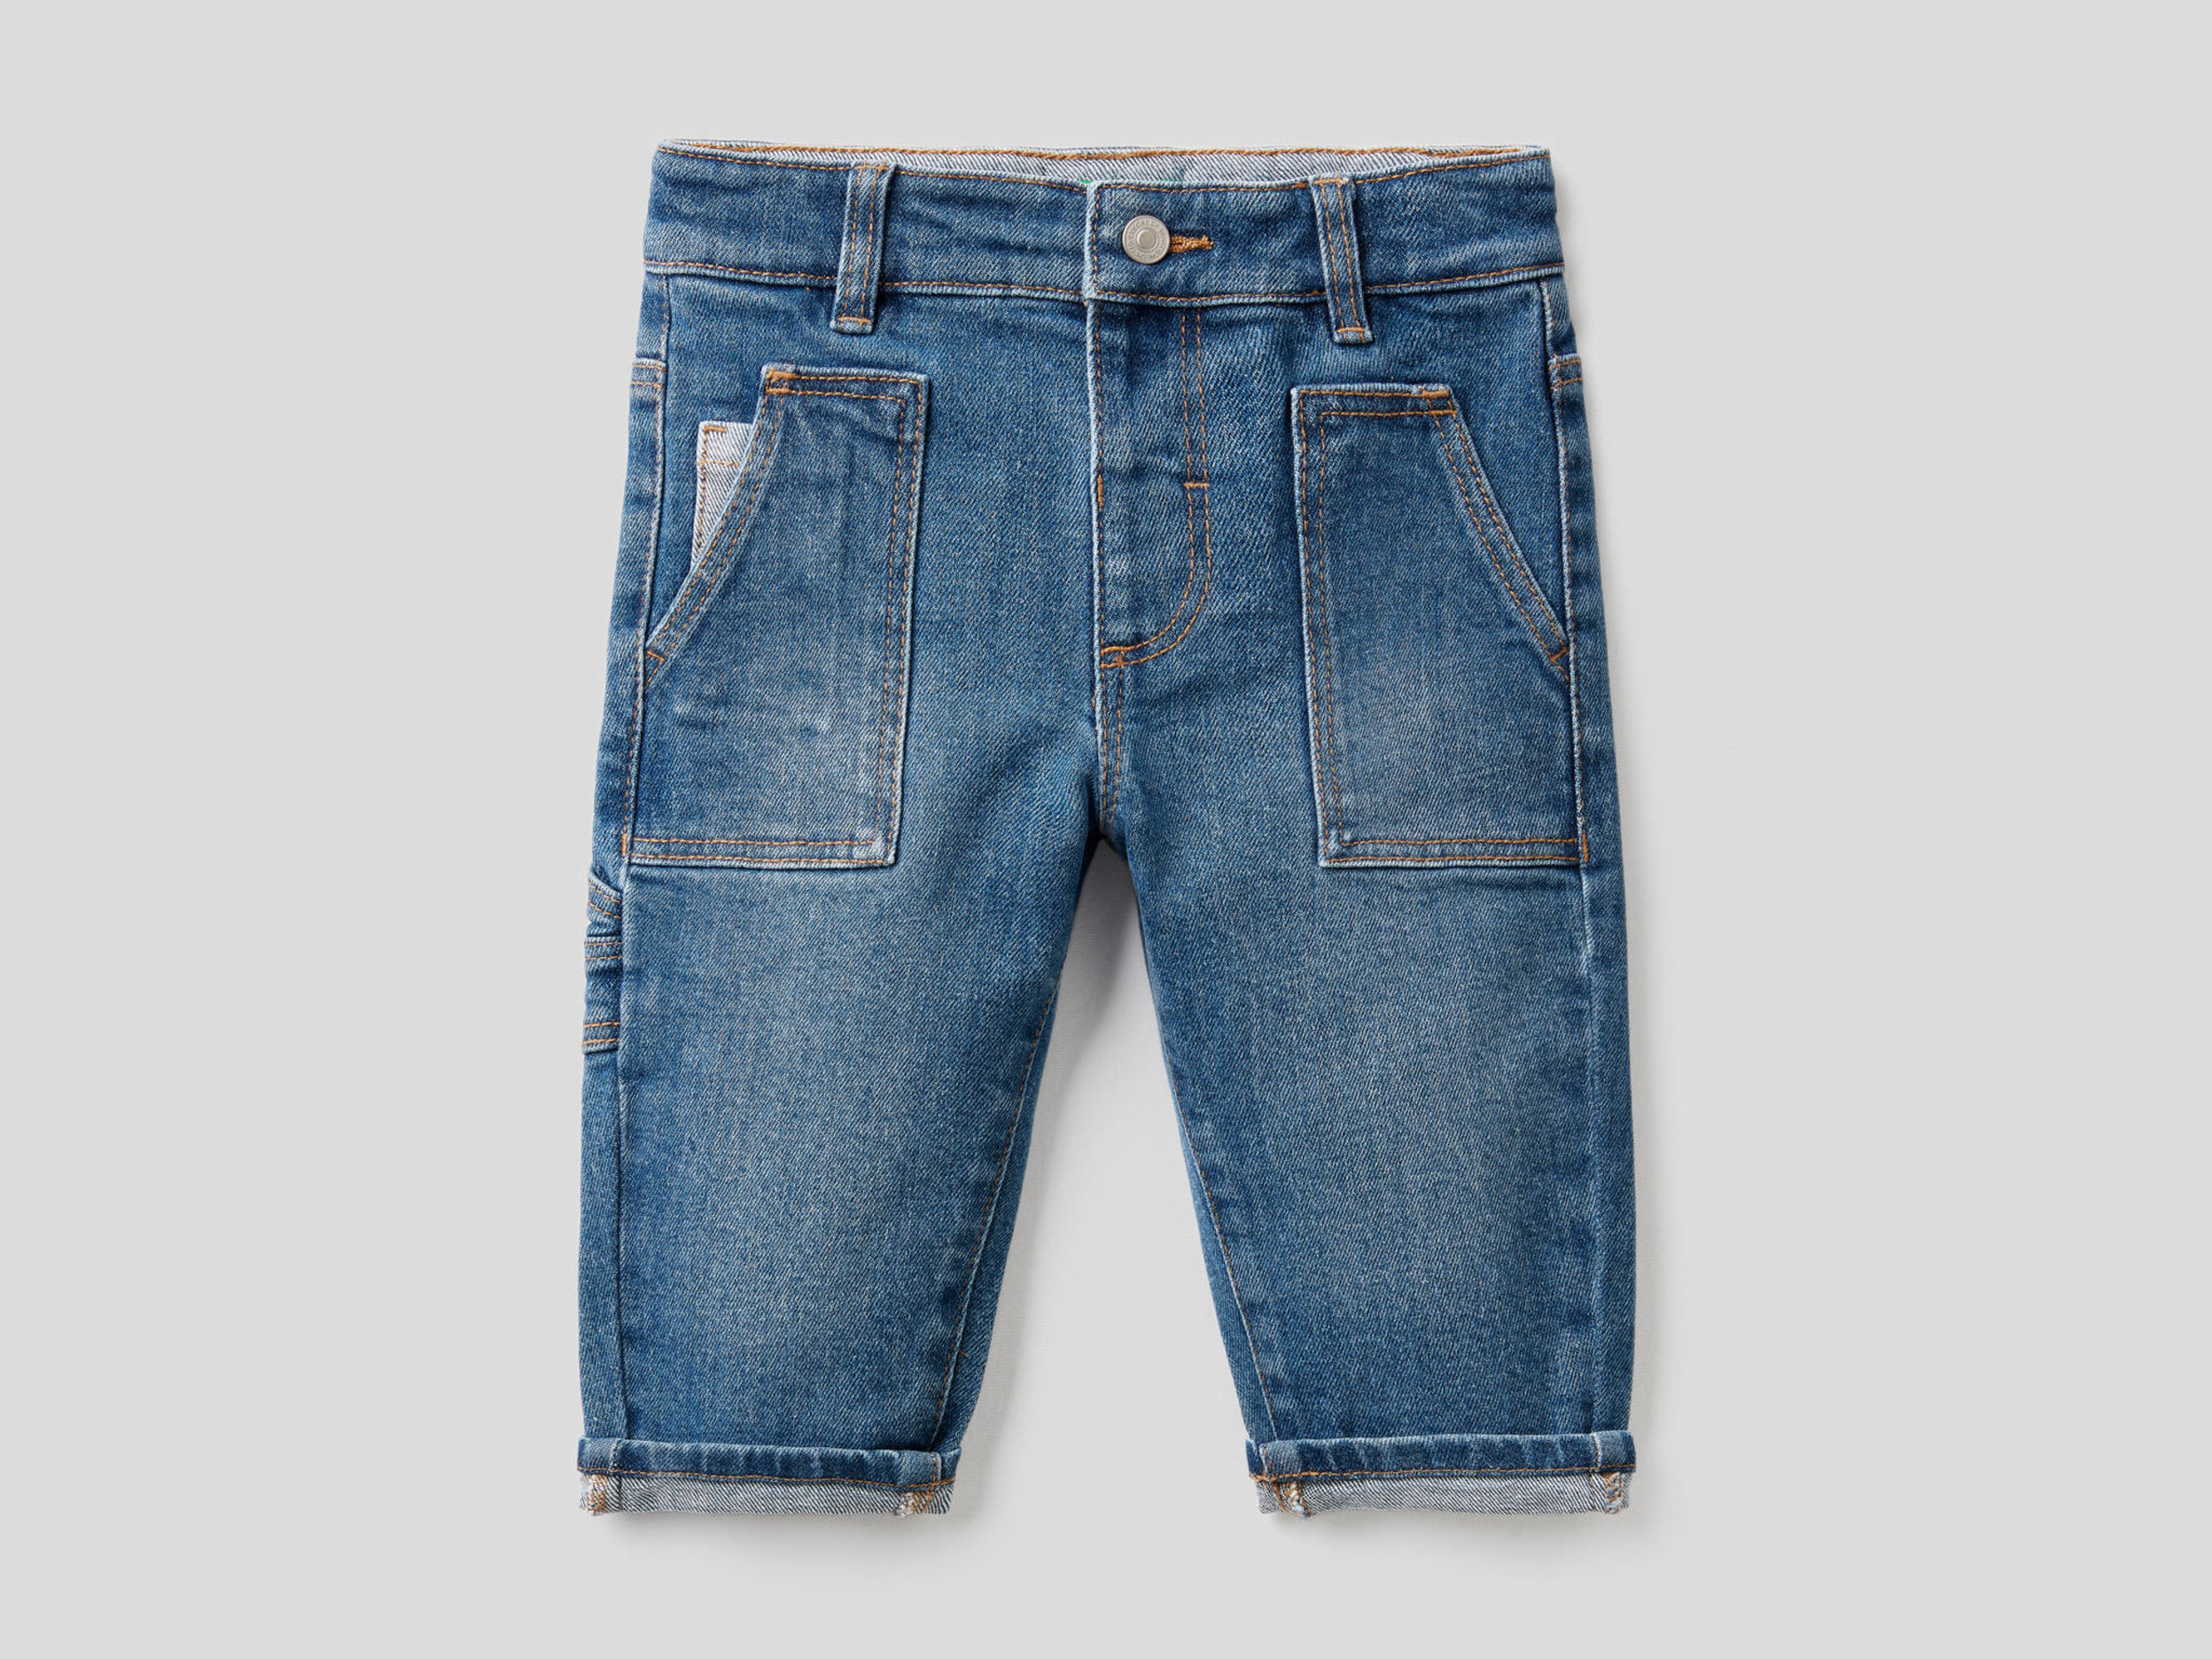 Benetton, Jeans With Pockets In Stretch Cotton, size , Blue, Kids